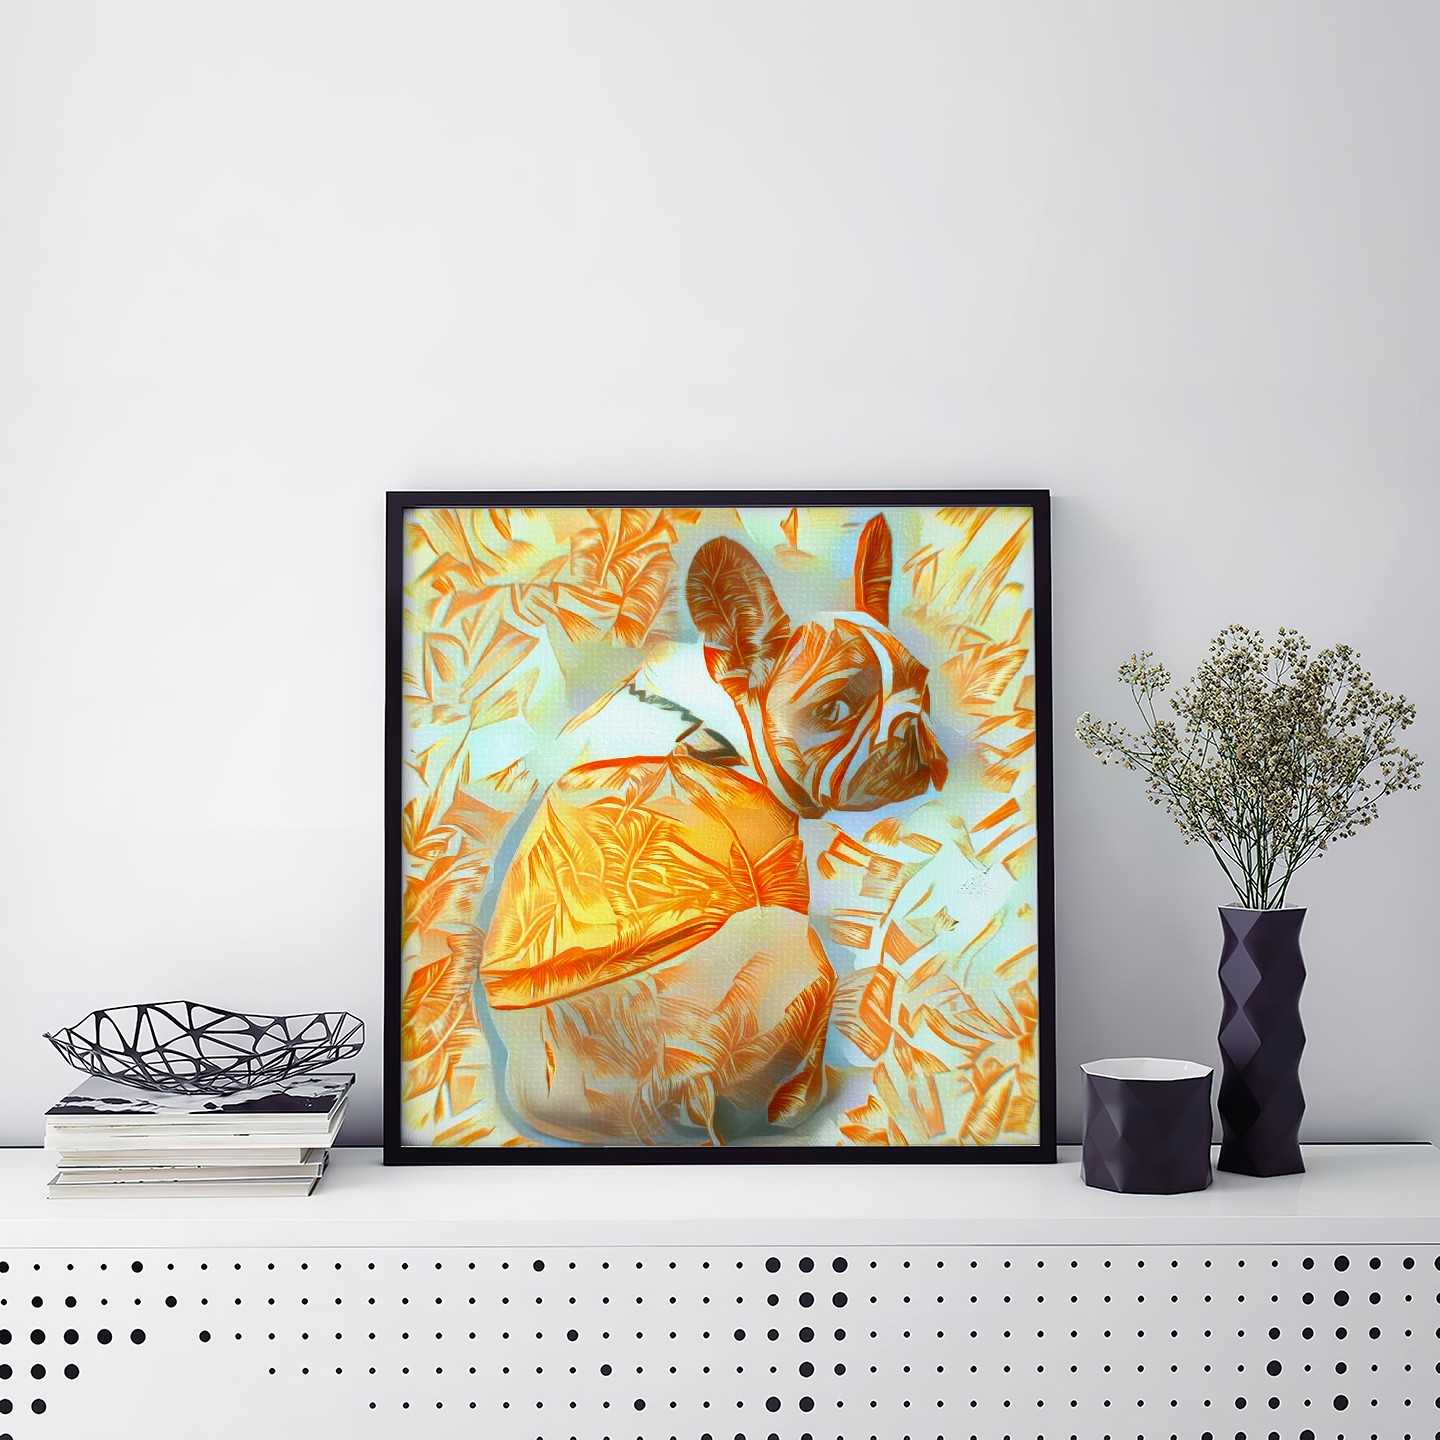 Execution & Eye - Remarkable personalized pet portraits